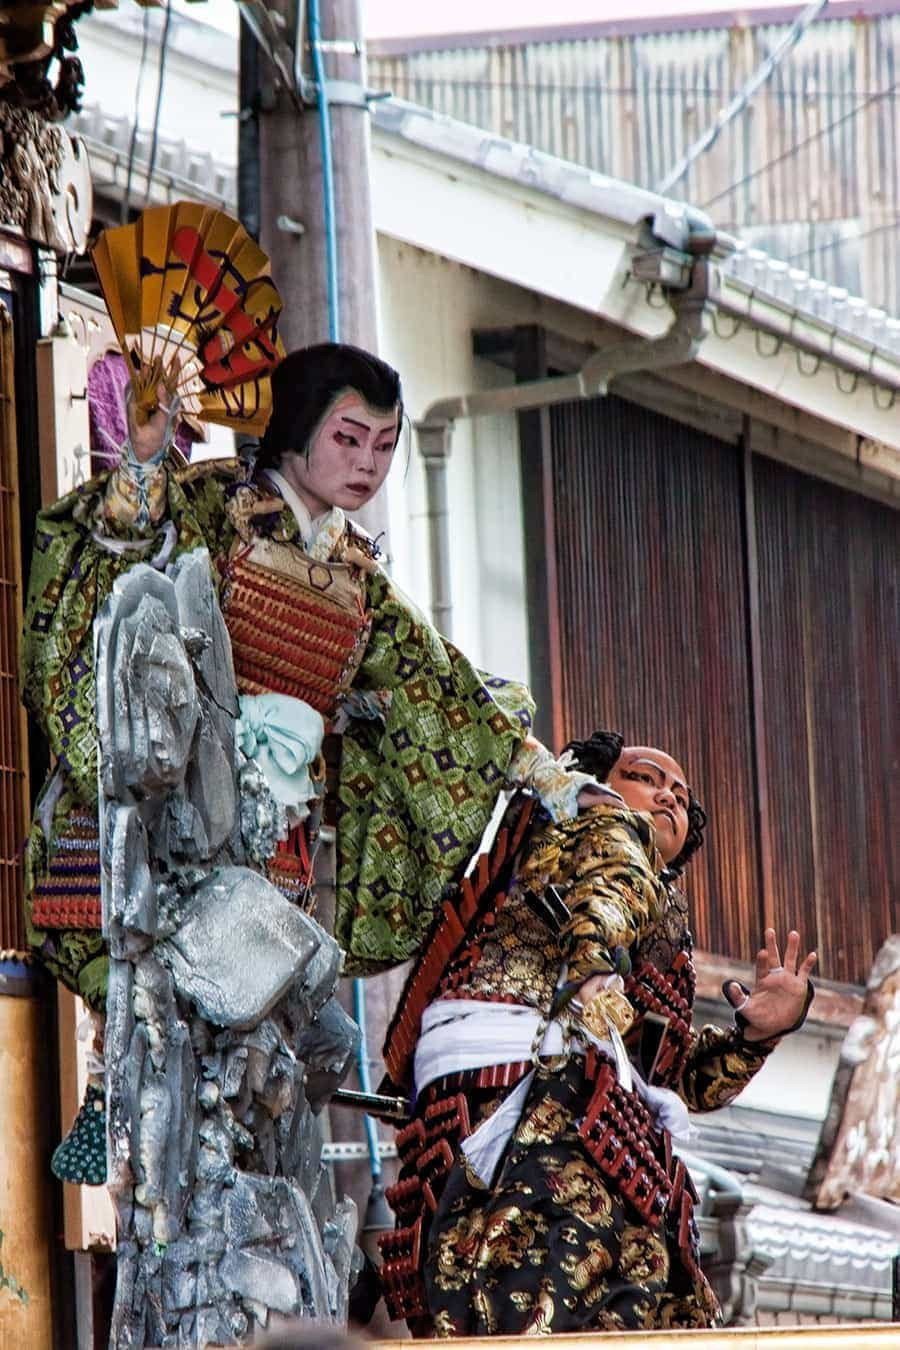 Festivals in Japan are a fabulous way to enjoy a community atmosphere and local culture. Here's all you need to know to plan a visit to the Nagahama Kabuki Festival